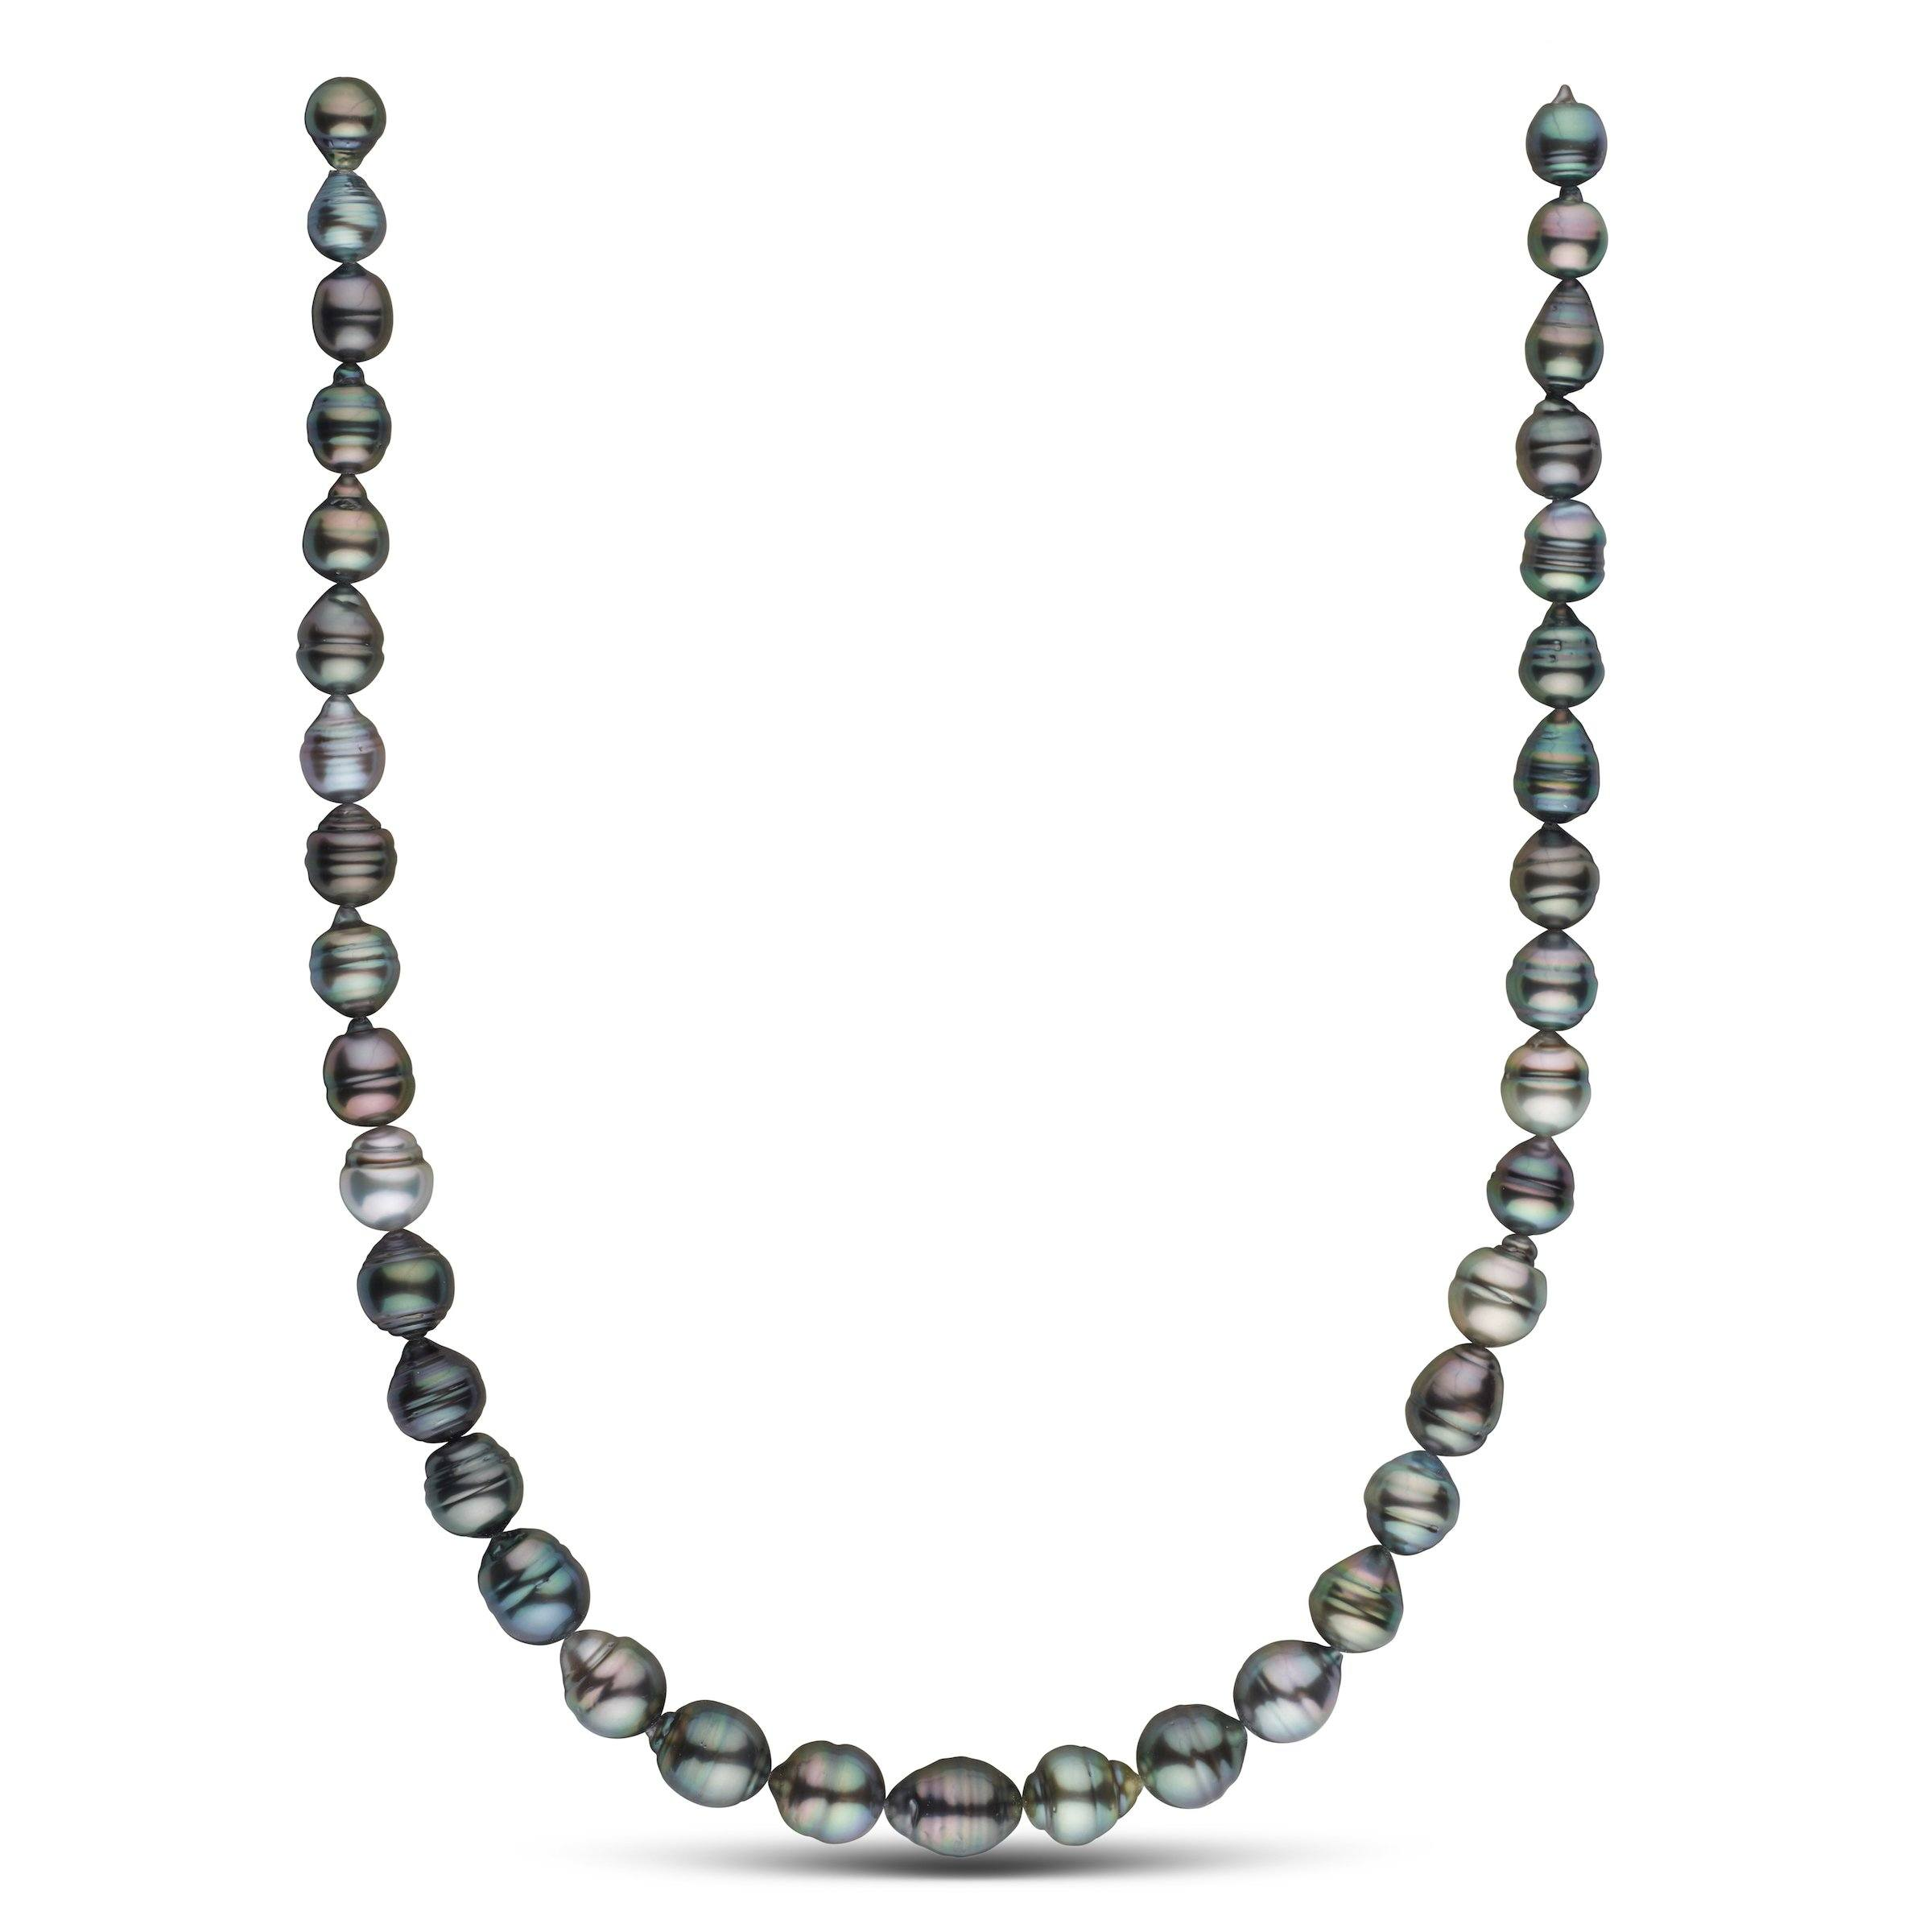 8.0-10.1 mm AA+/AAA Tahitian Baroque Pearl Necklace